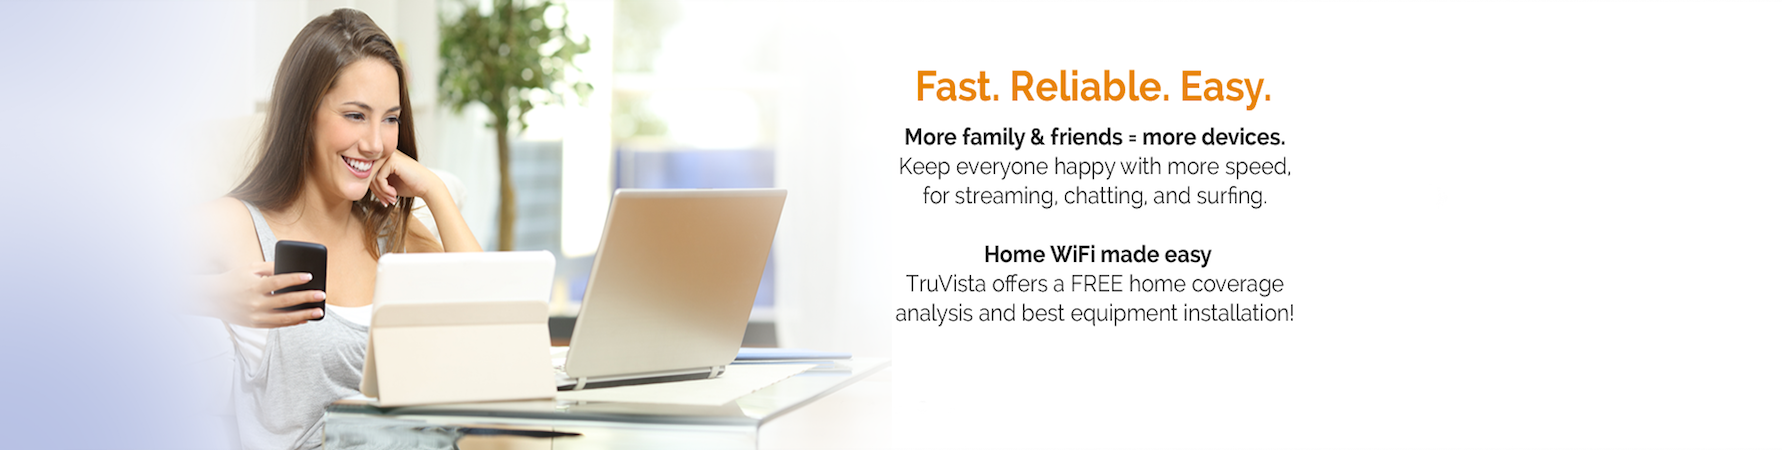 Fast. Reliable. Easy.